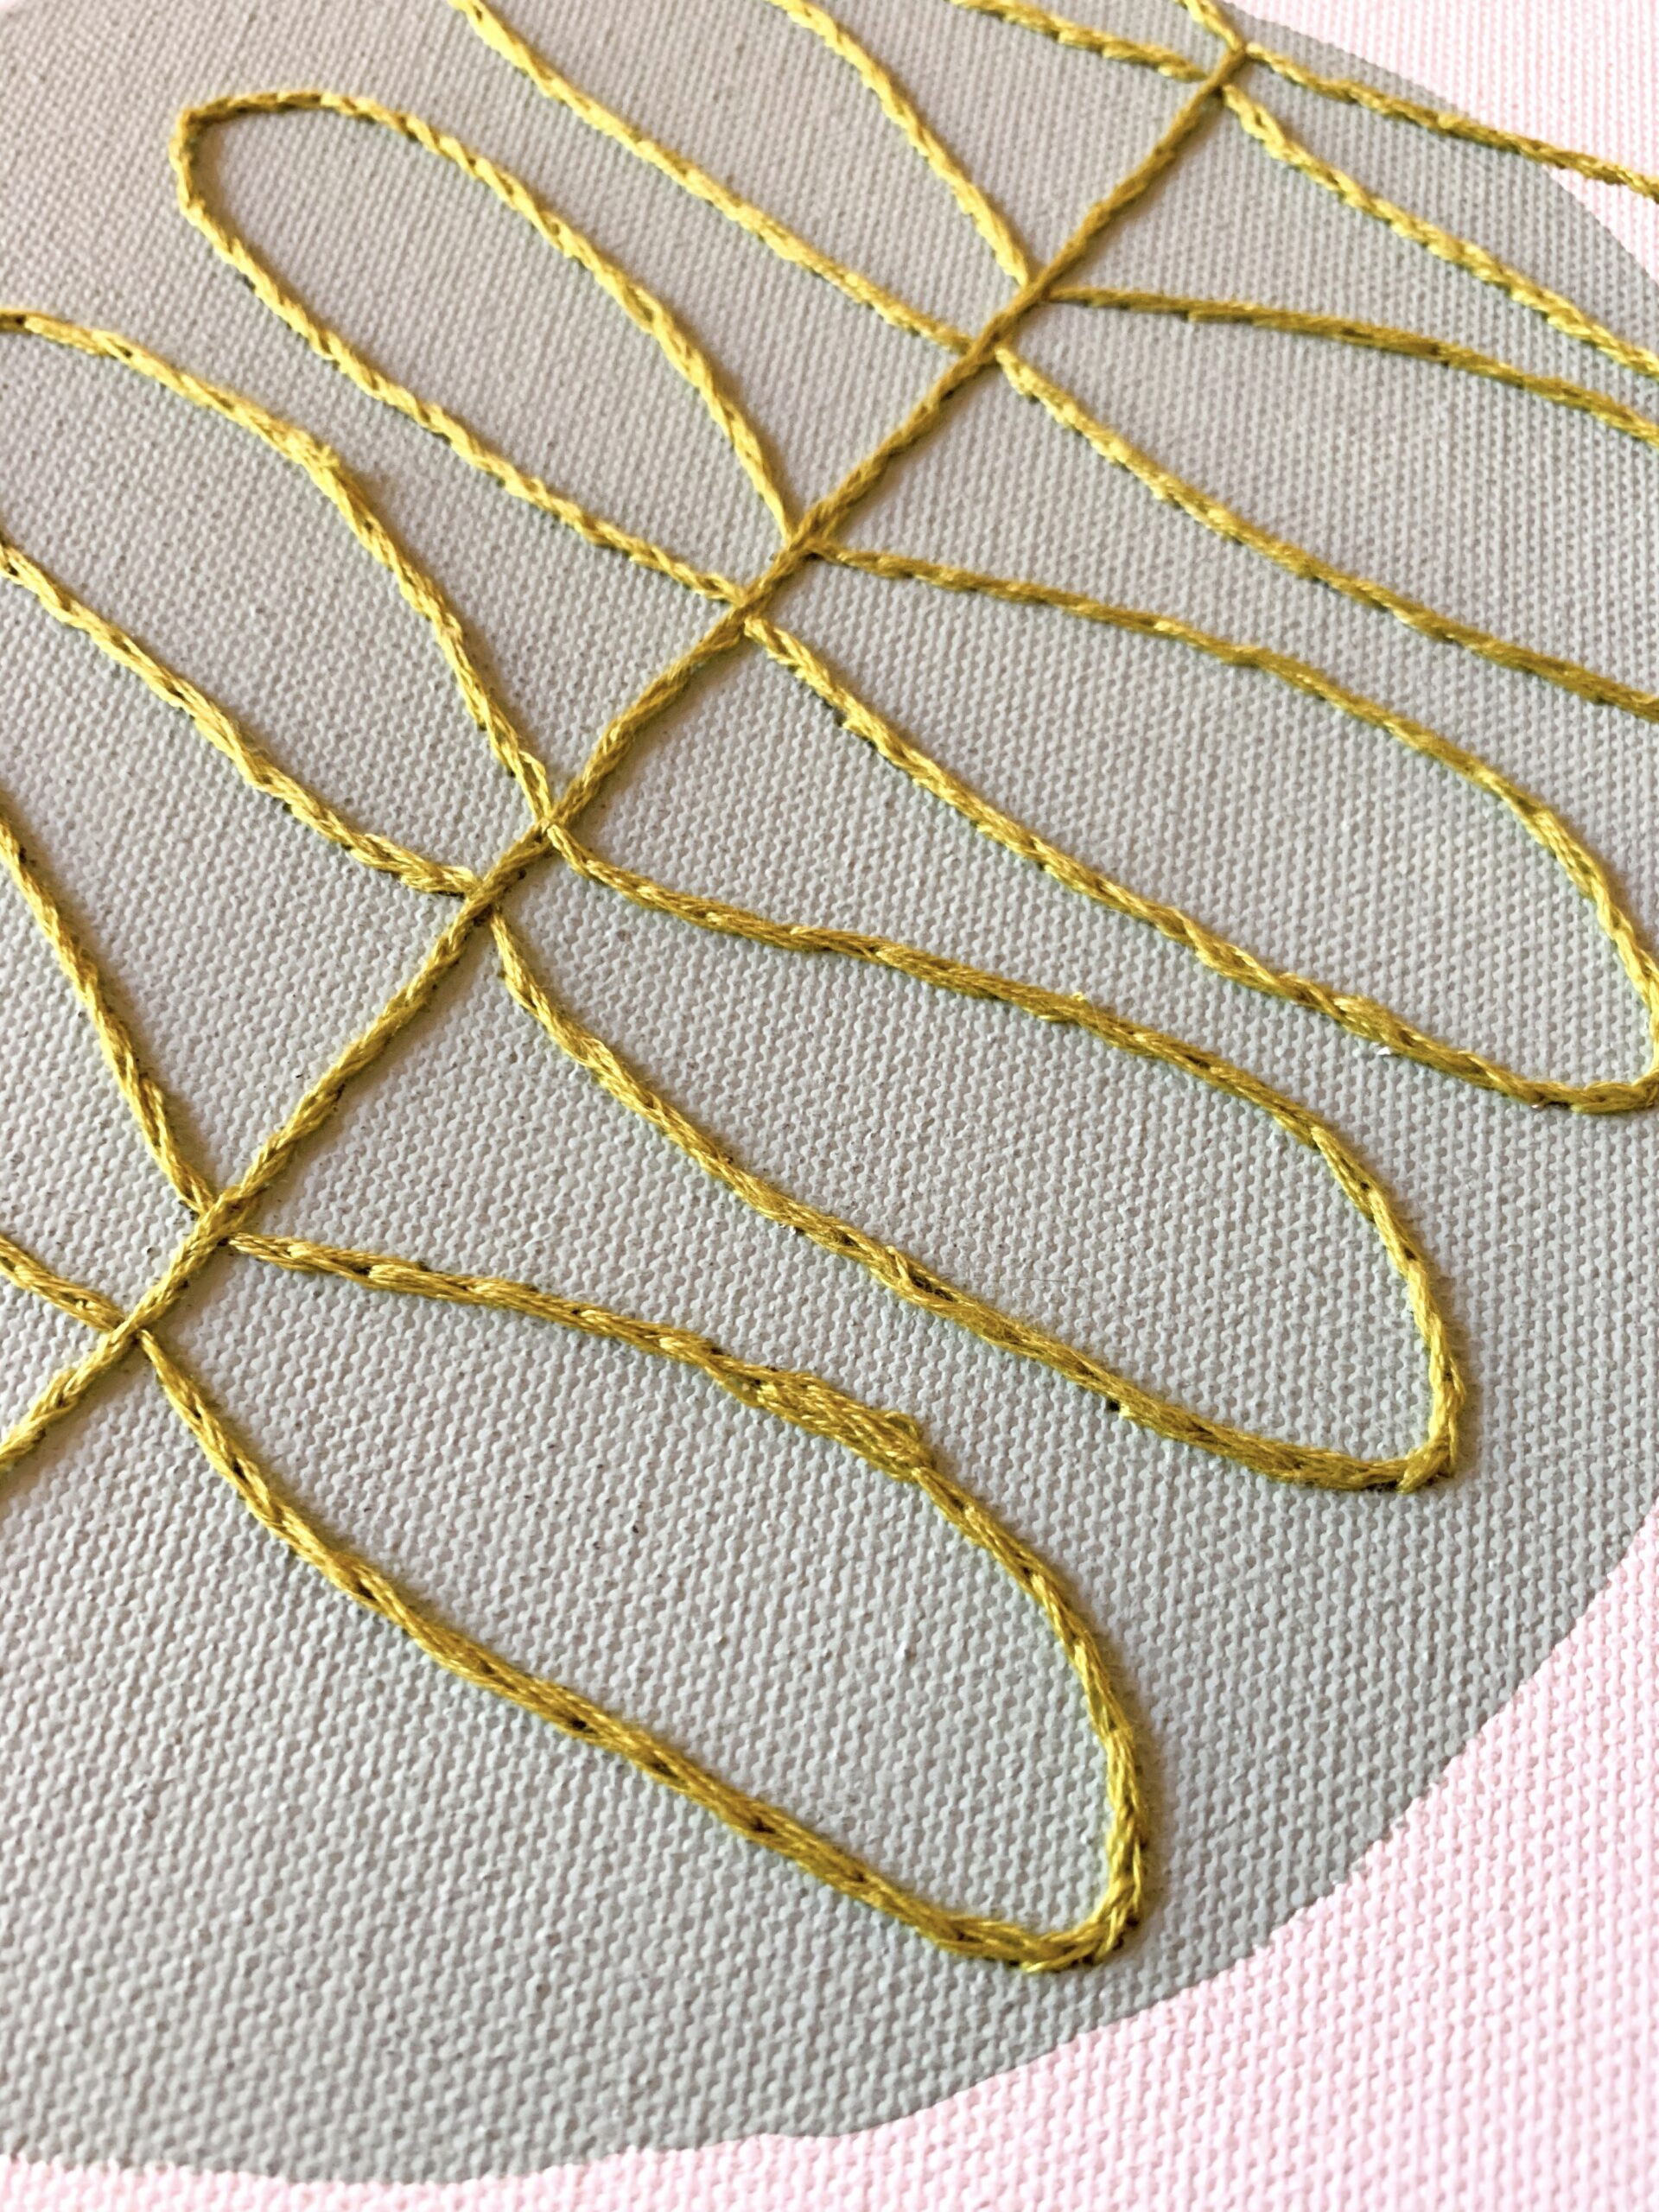 Embroidery Canvas